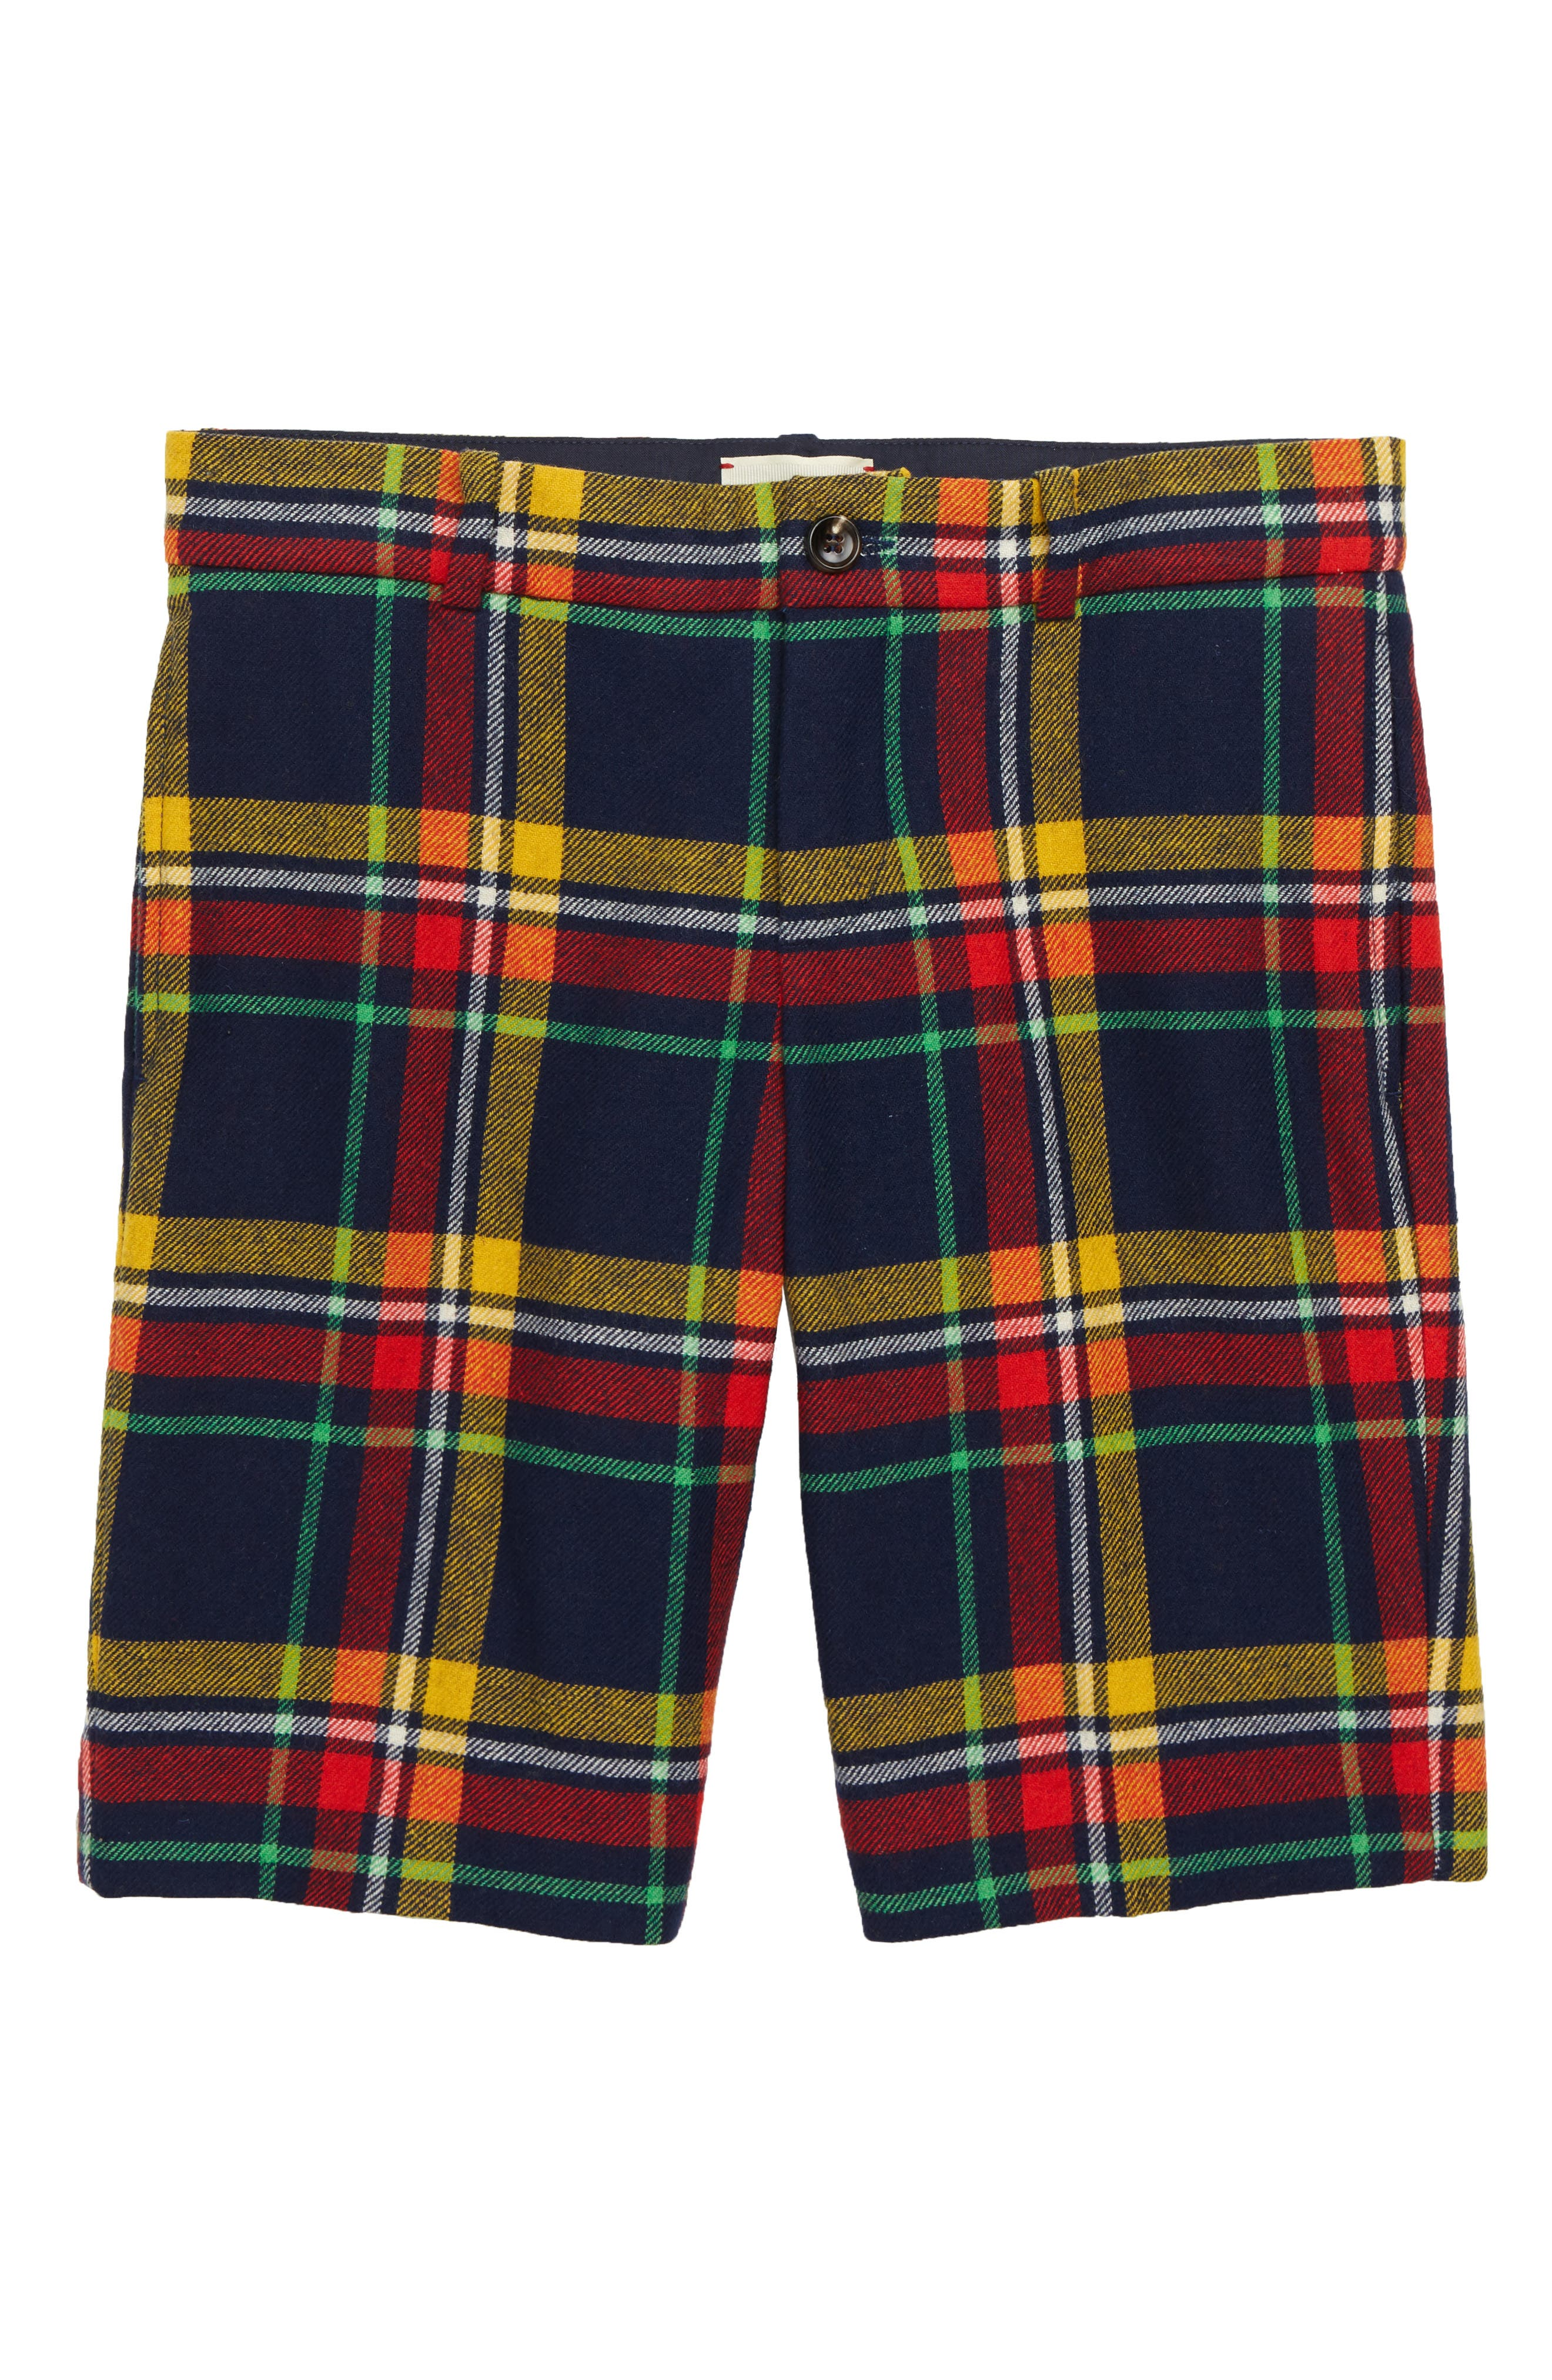 Plaid Bermuda Shorts,                             Main thumbnail 1, color,                             OLTREMARE/ PEPPER RED